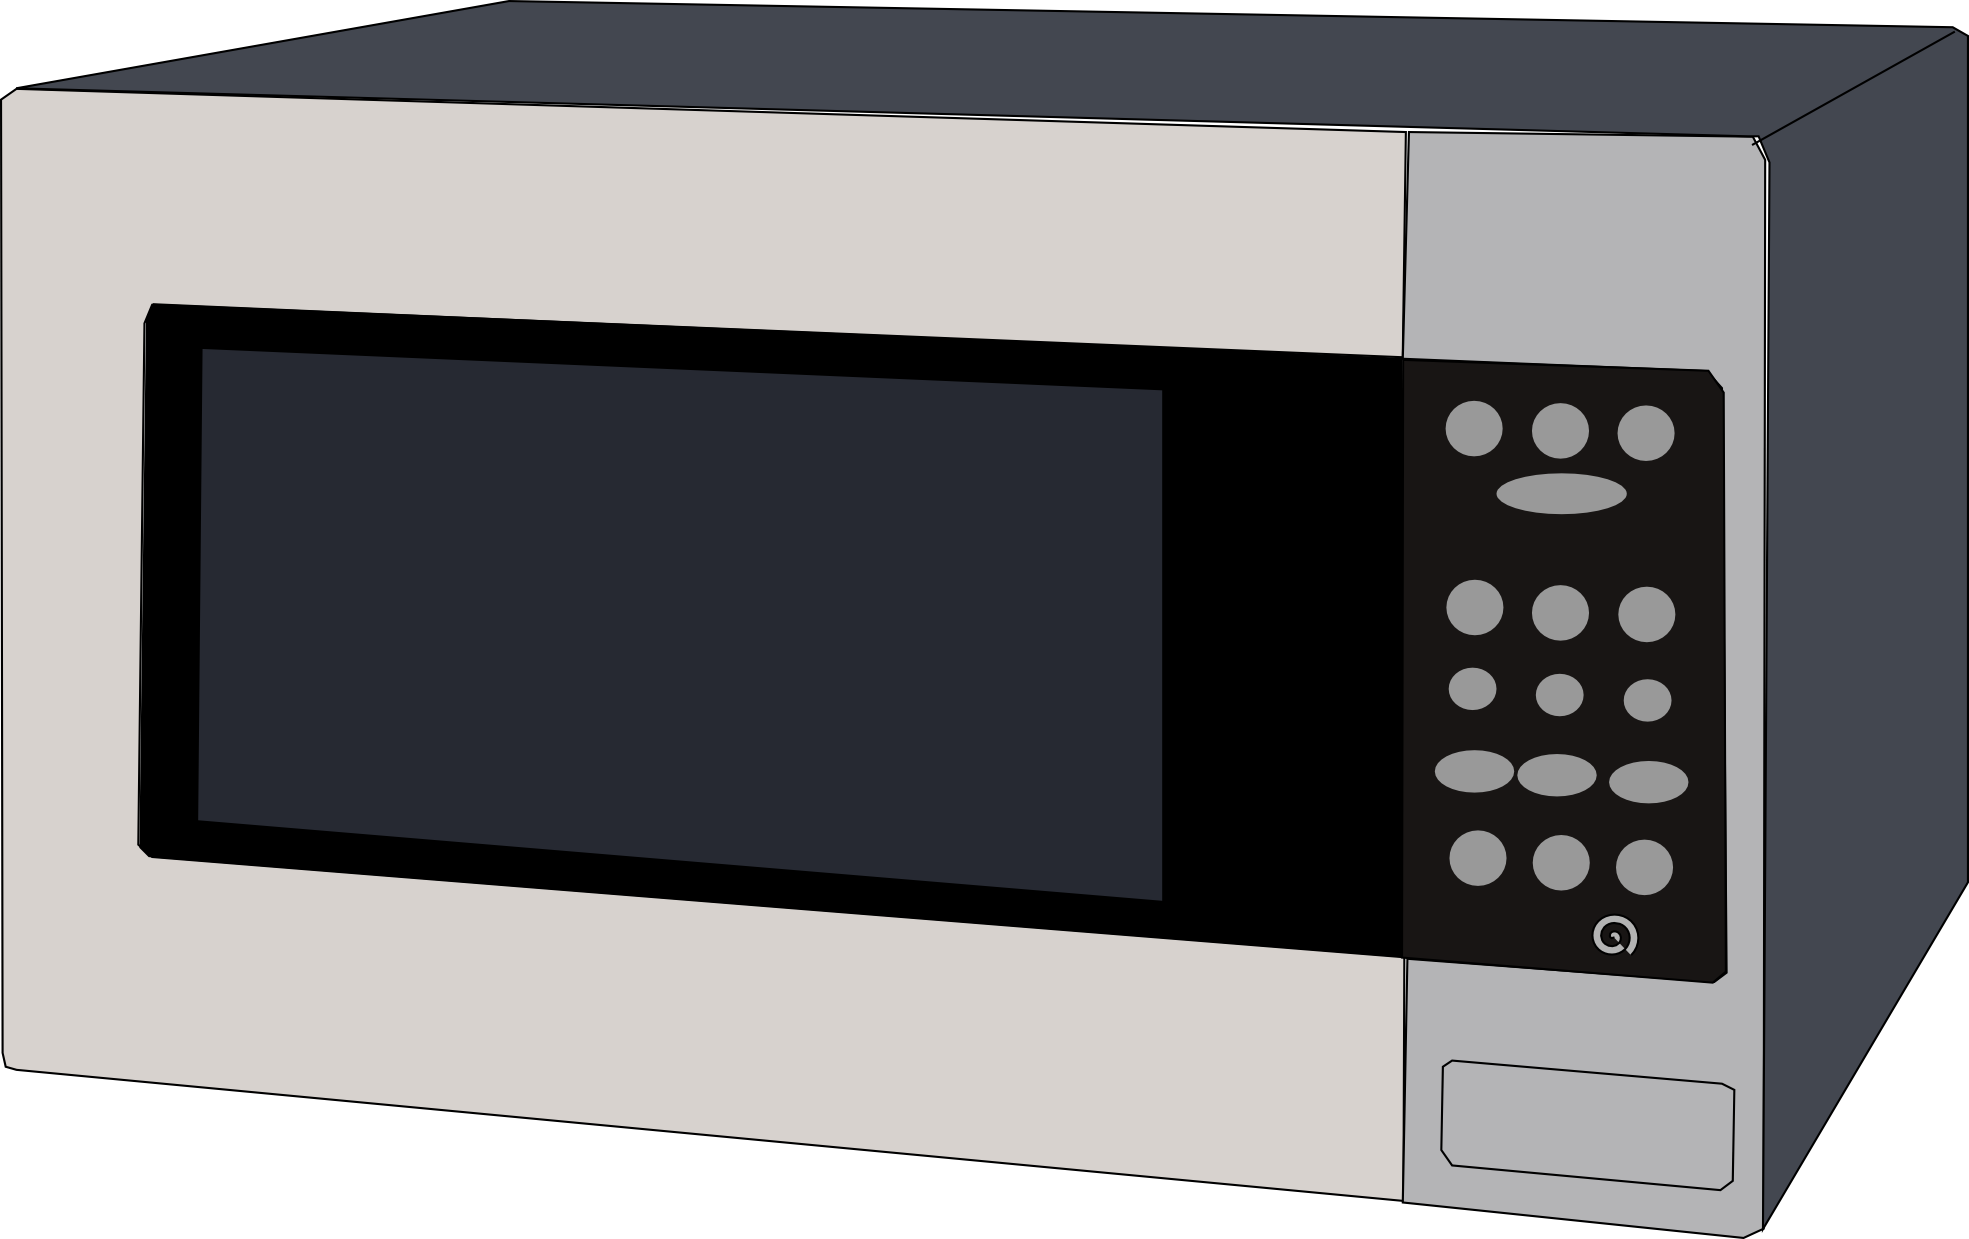 Microwave Oven Clip Art ~ Microwave clipart panda free images